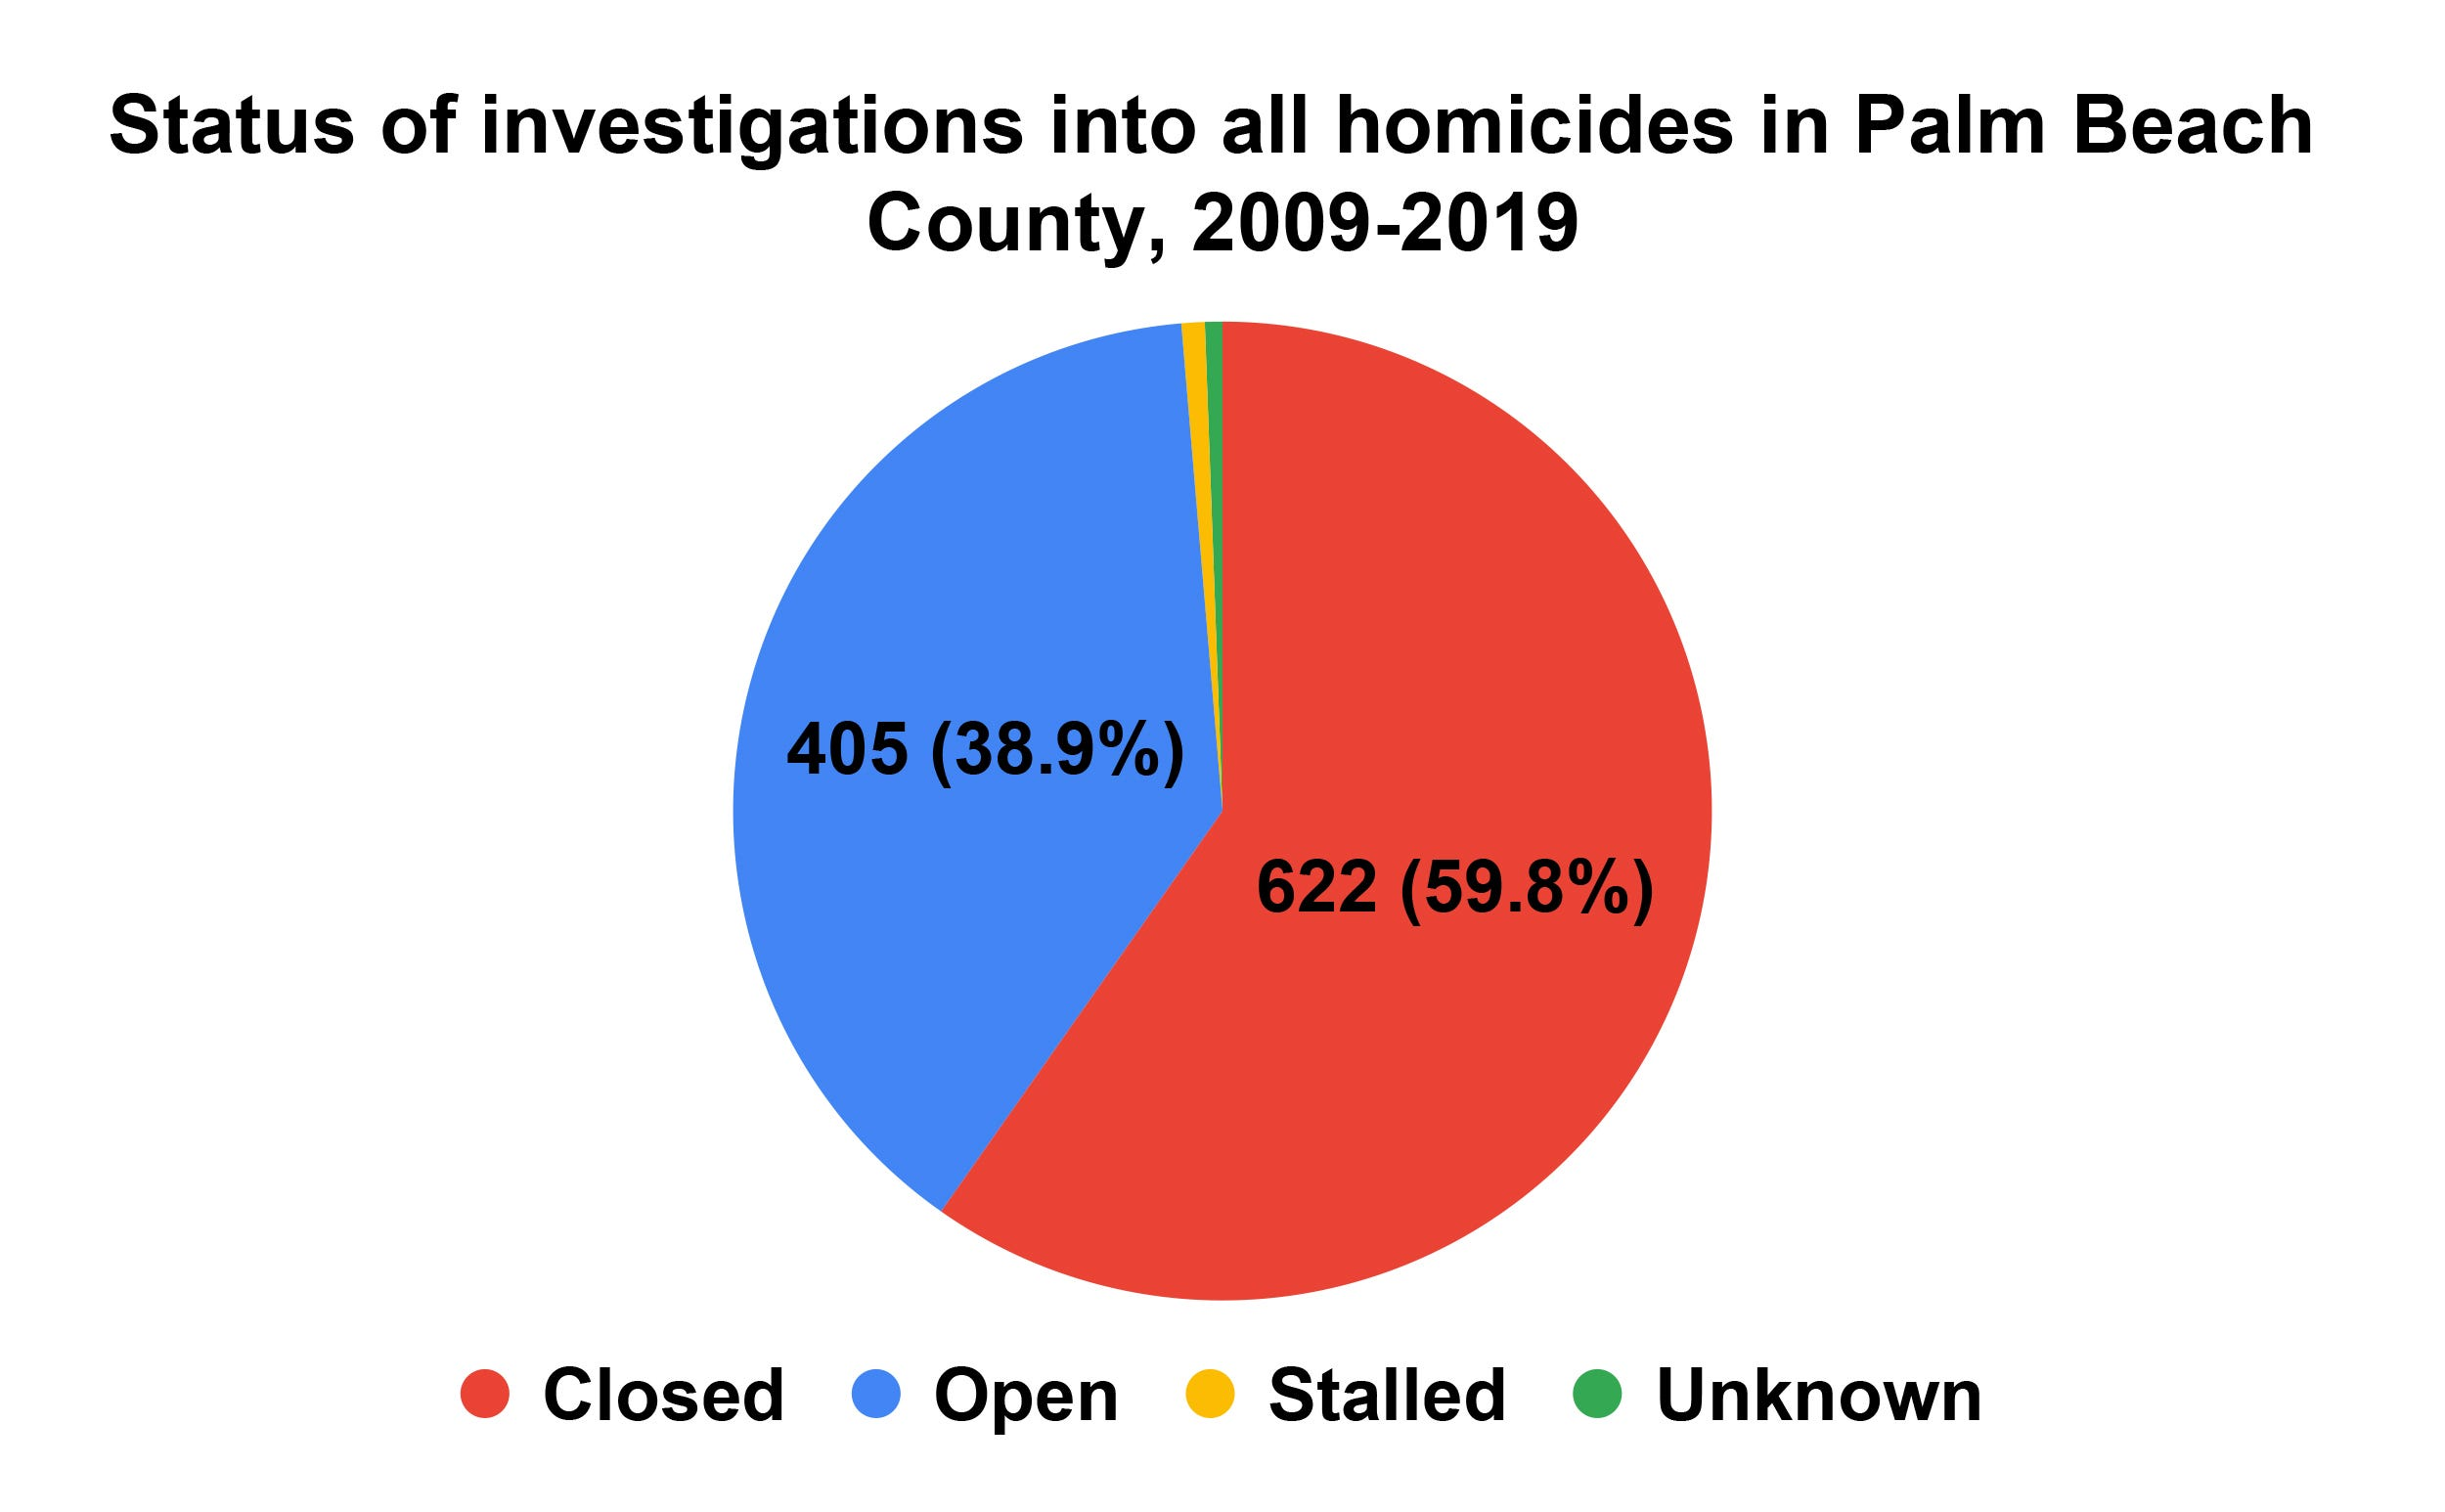 Status of investigations into all homicides in Palm Beach County from 2009 to 2019.